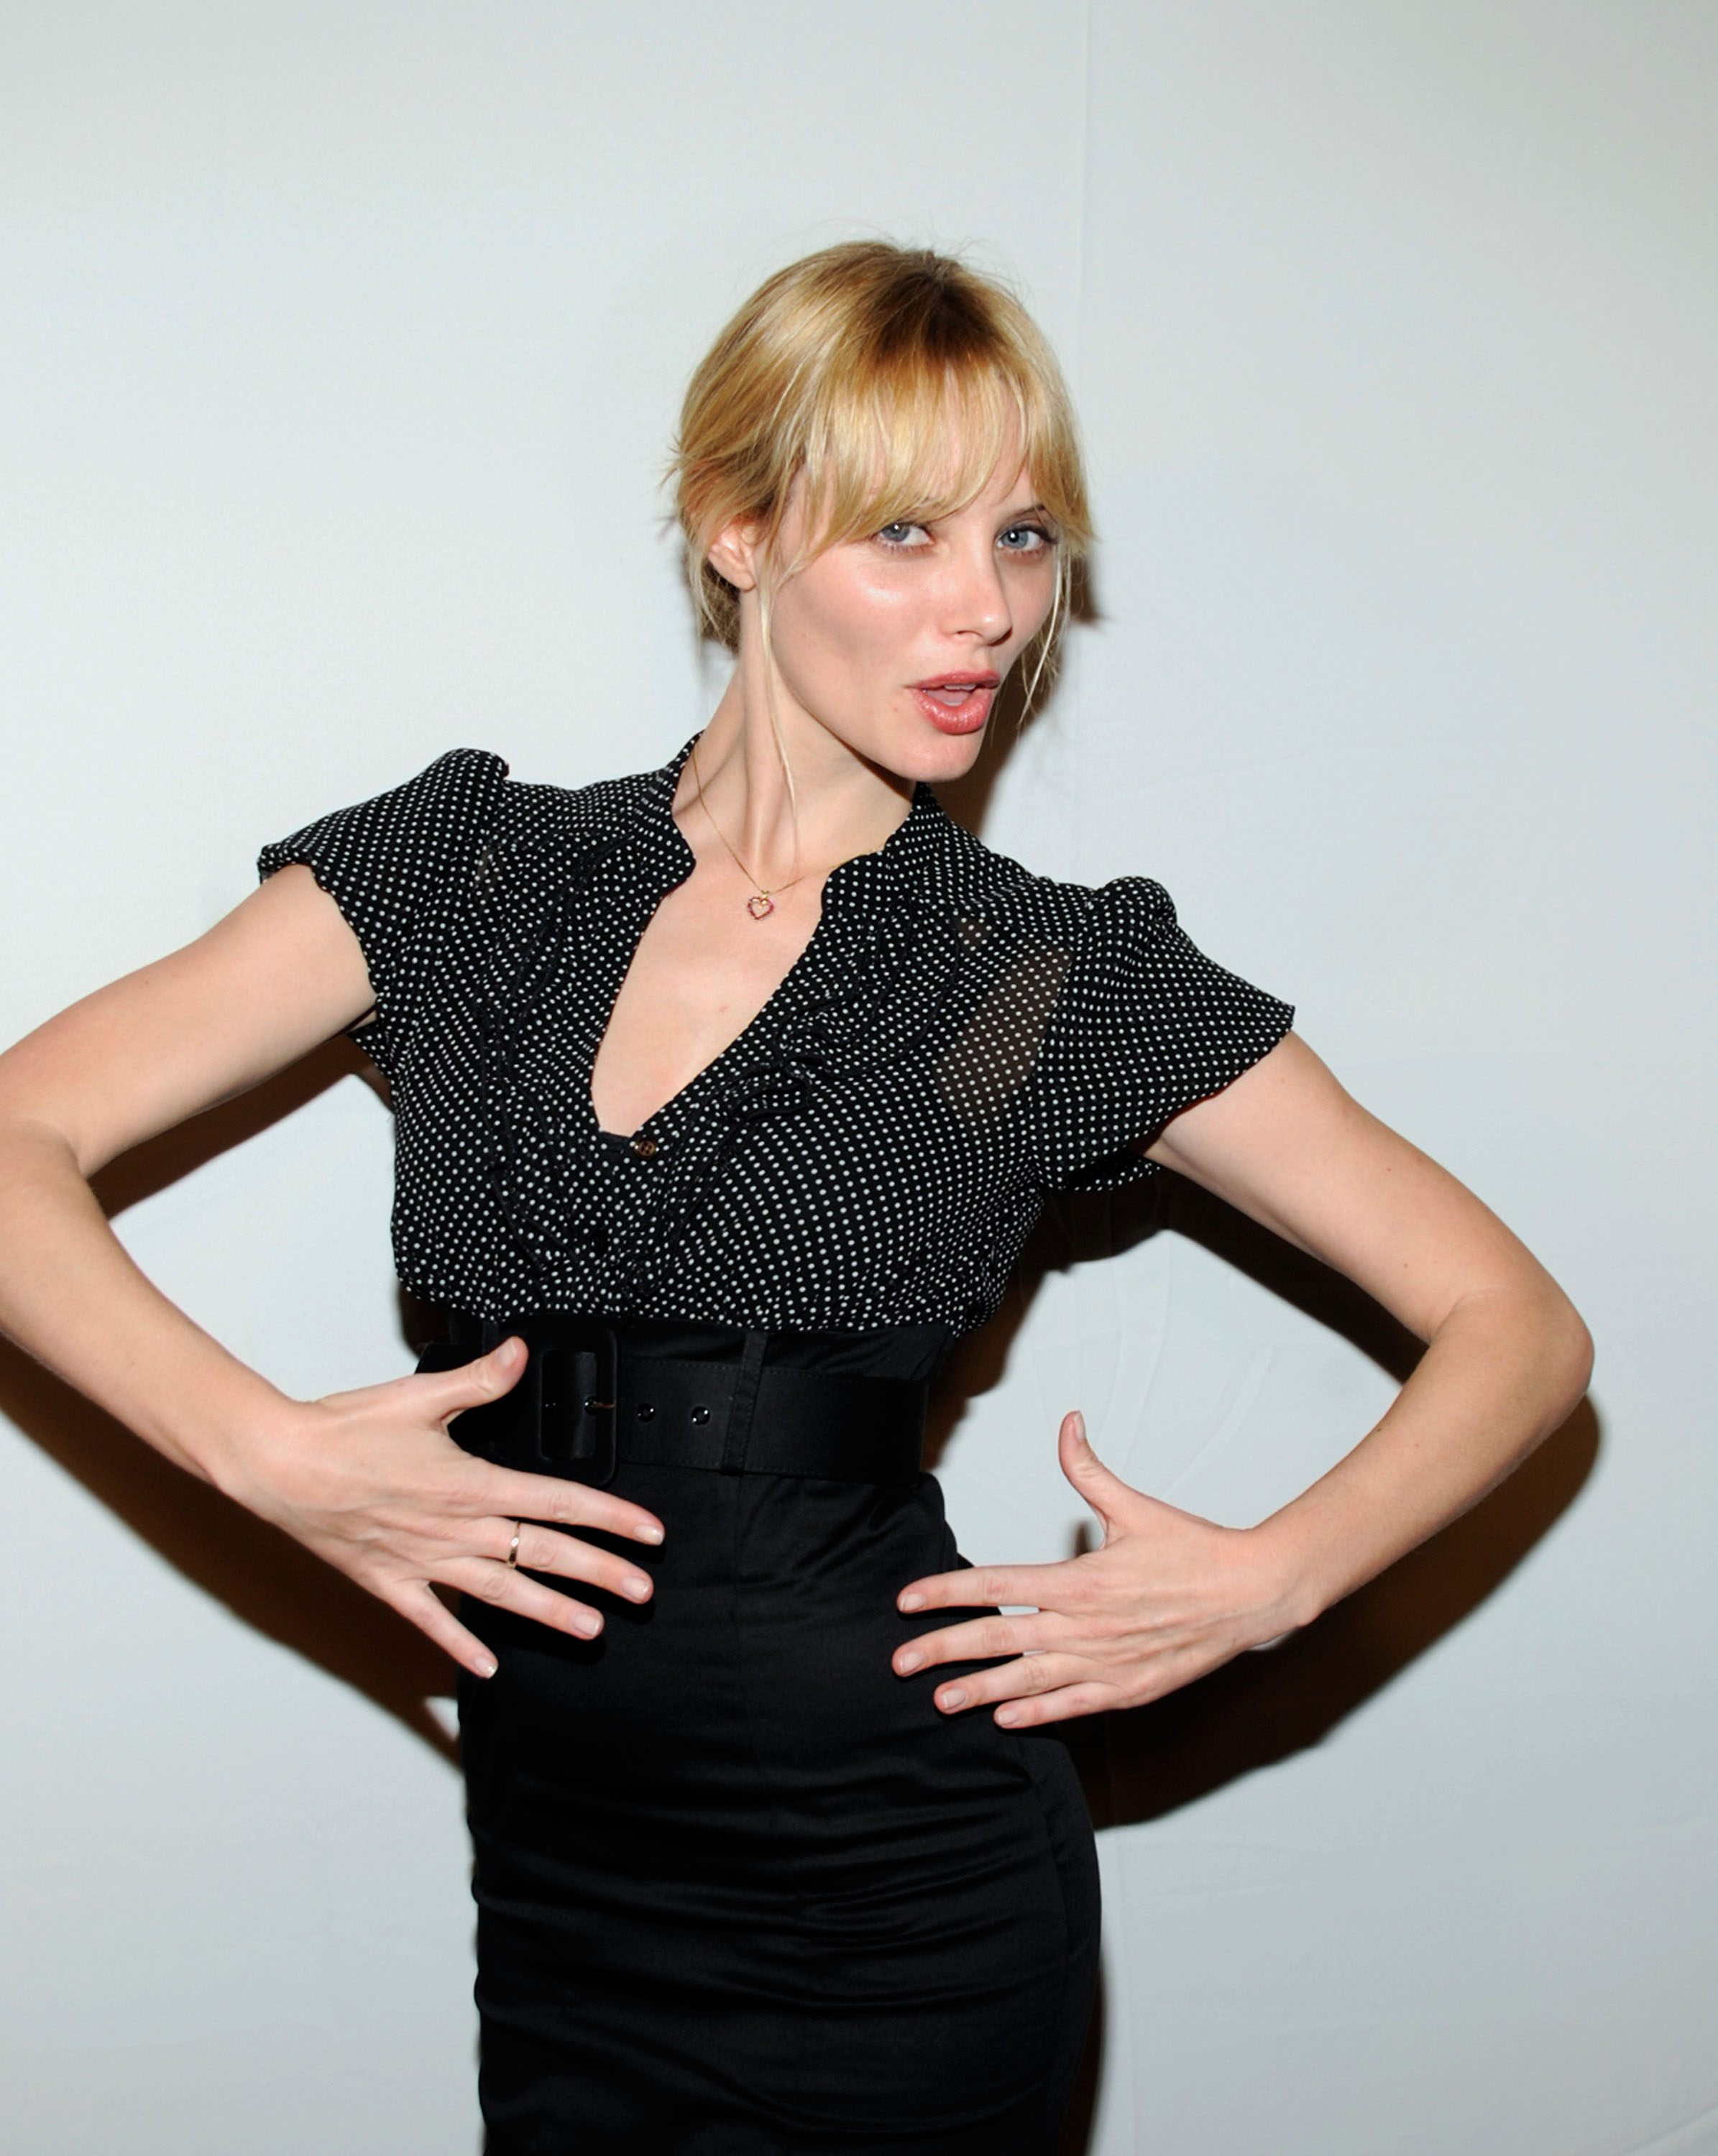 April Bowlby - Pictures, Videos, Bio, and More